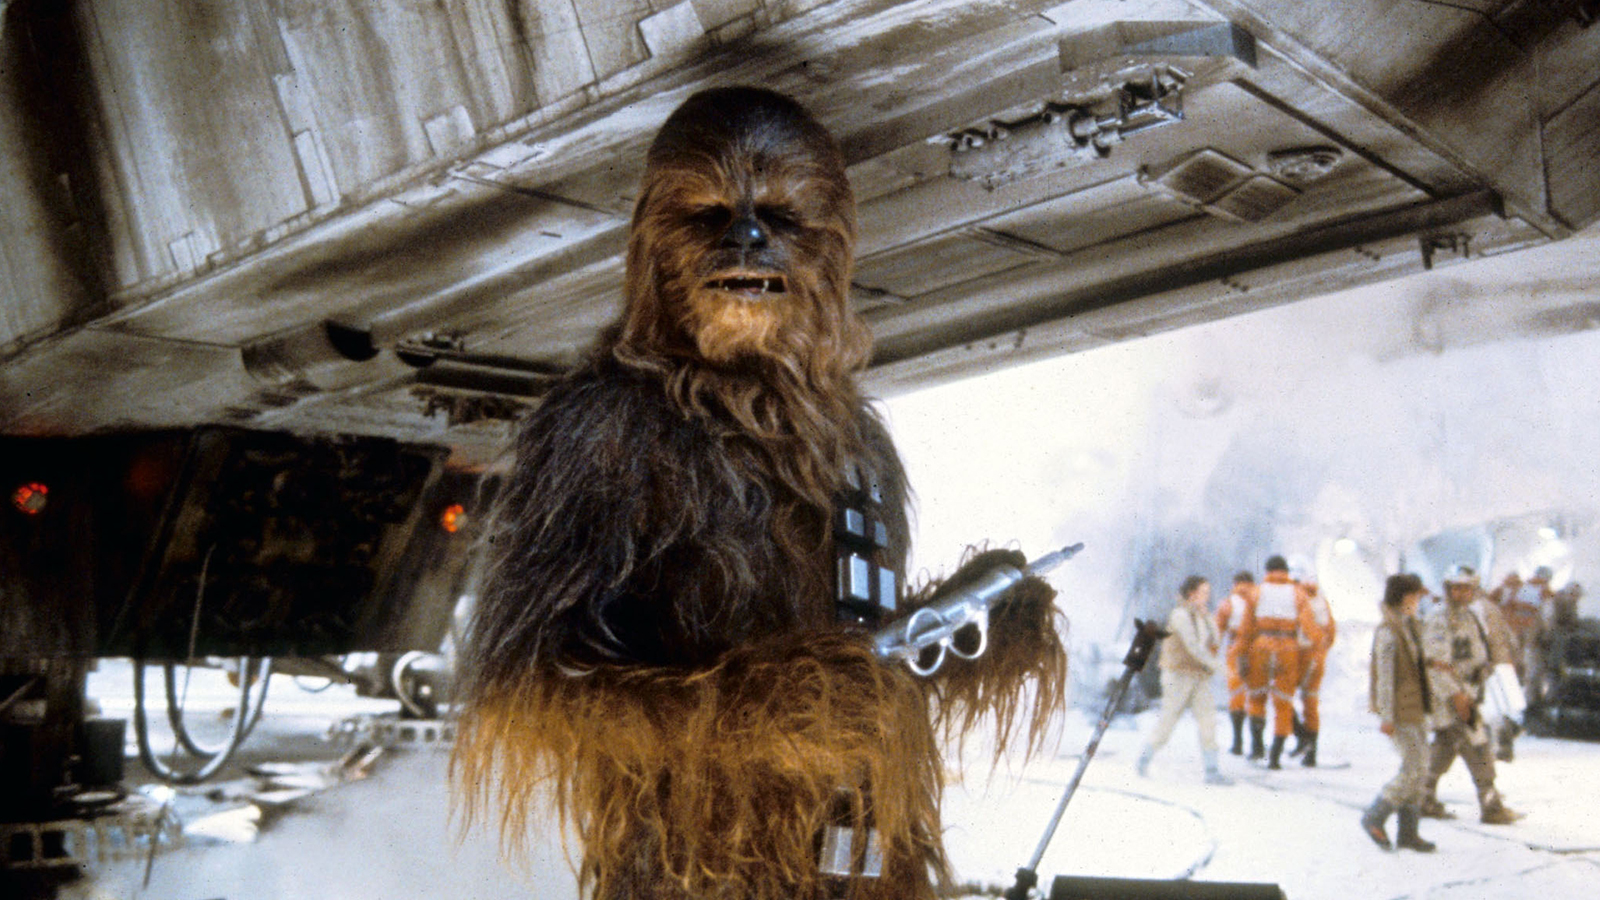 the new chewbacca just penned a touching tribute to the